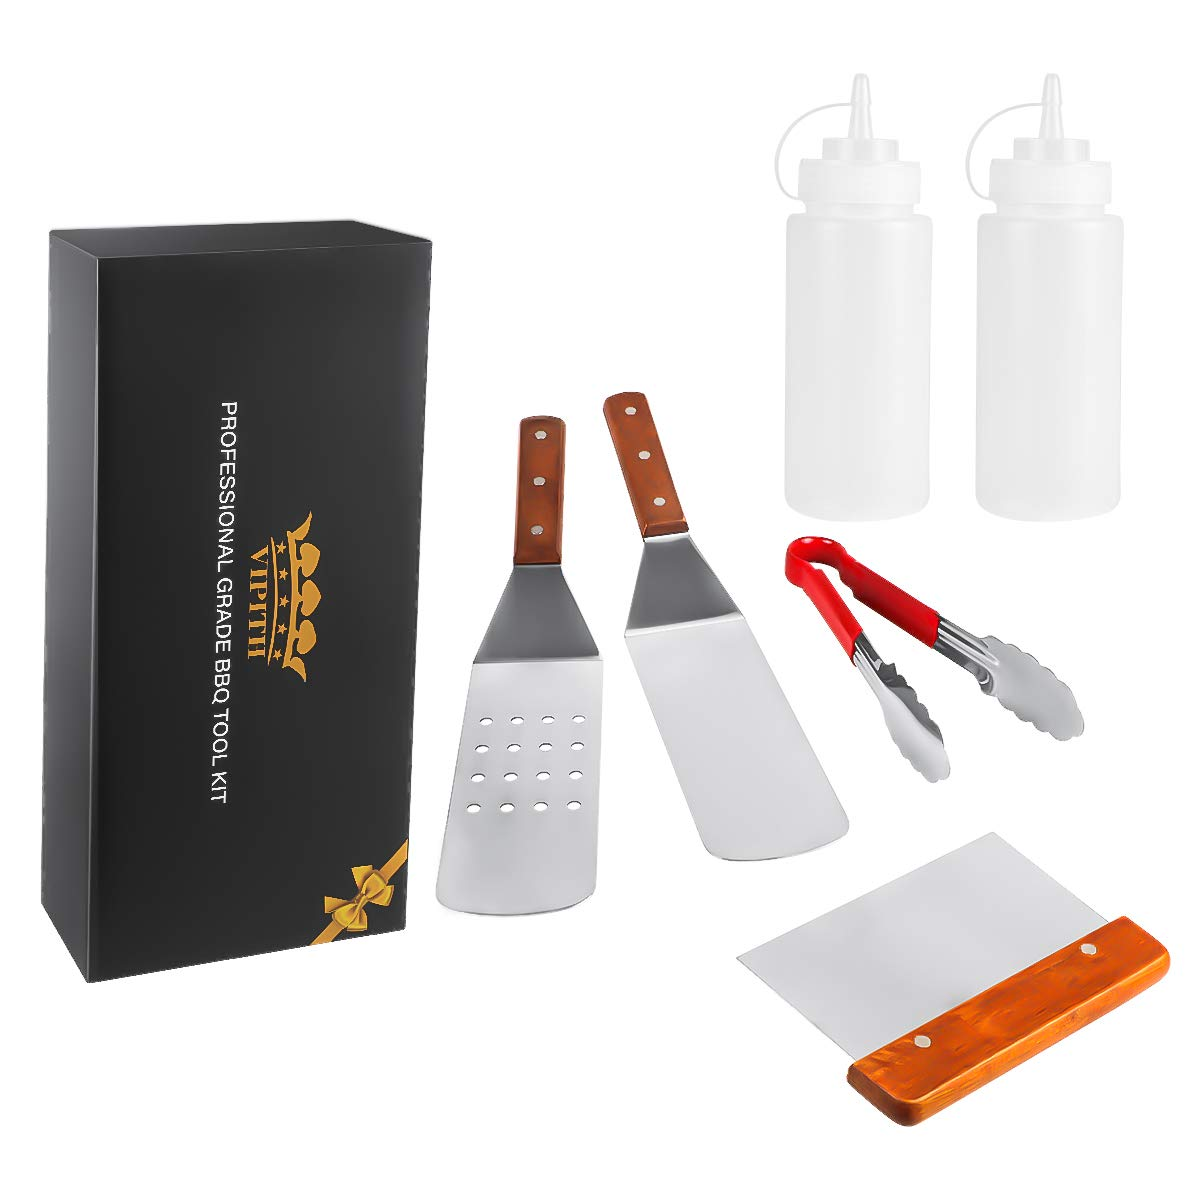 COM4SPORT 6 Piece Professional Grade Stainless Steel BBQ Grill and Griddle Spatulas Tool Kit Great for Grill Griddle Flat 2 Spatulas, 1 Chopper Scrapper, 1 Kitchen Tongs, 2 Condiment Bottles